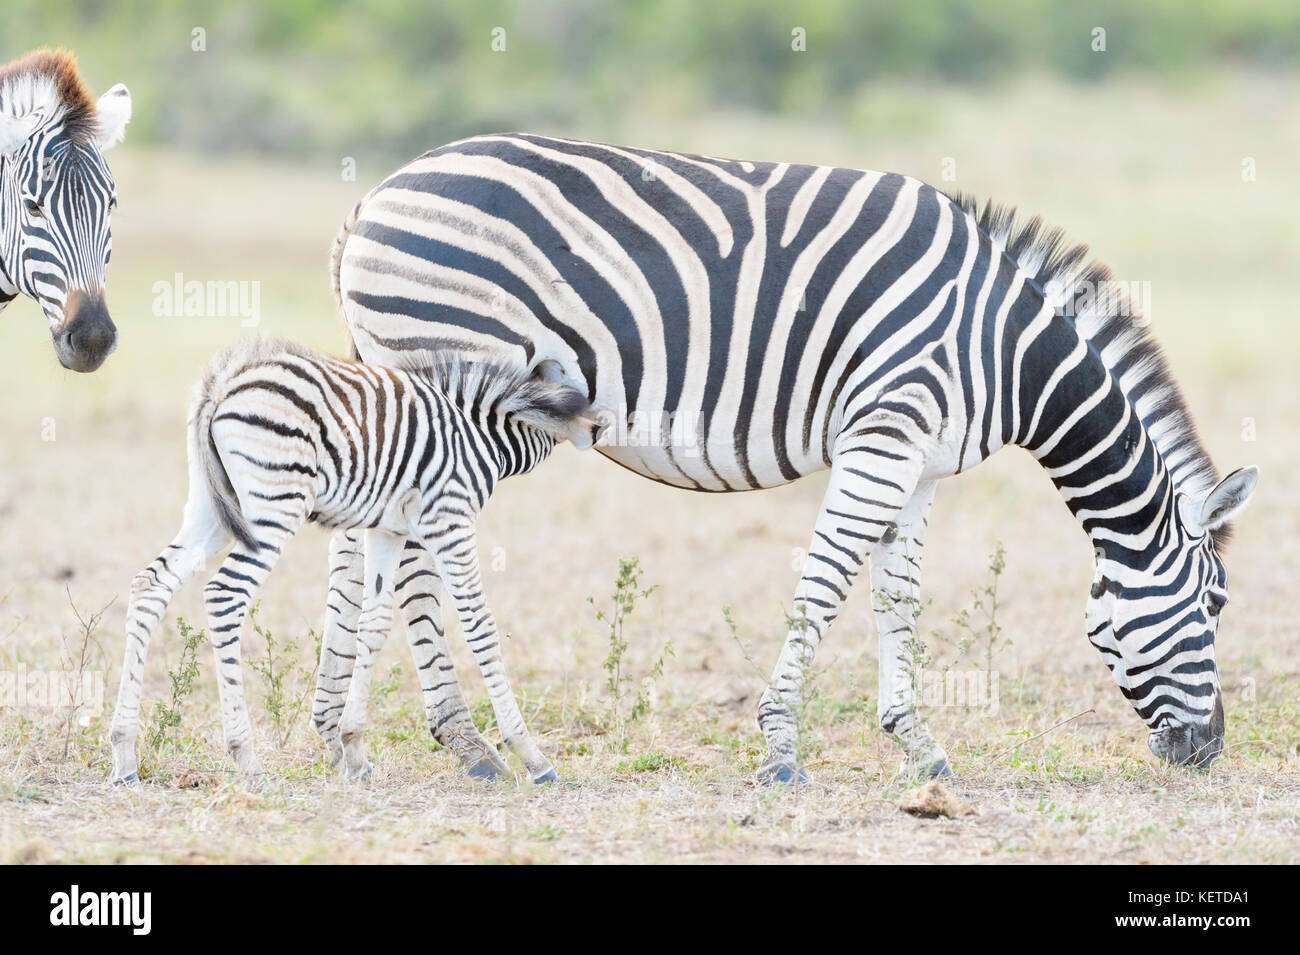 Plains zebra (Equus quagga) foal drinking with mother on savanna, Kruger National Park, South Africa - Stock Image